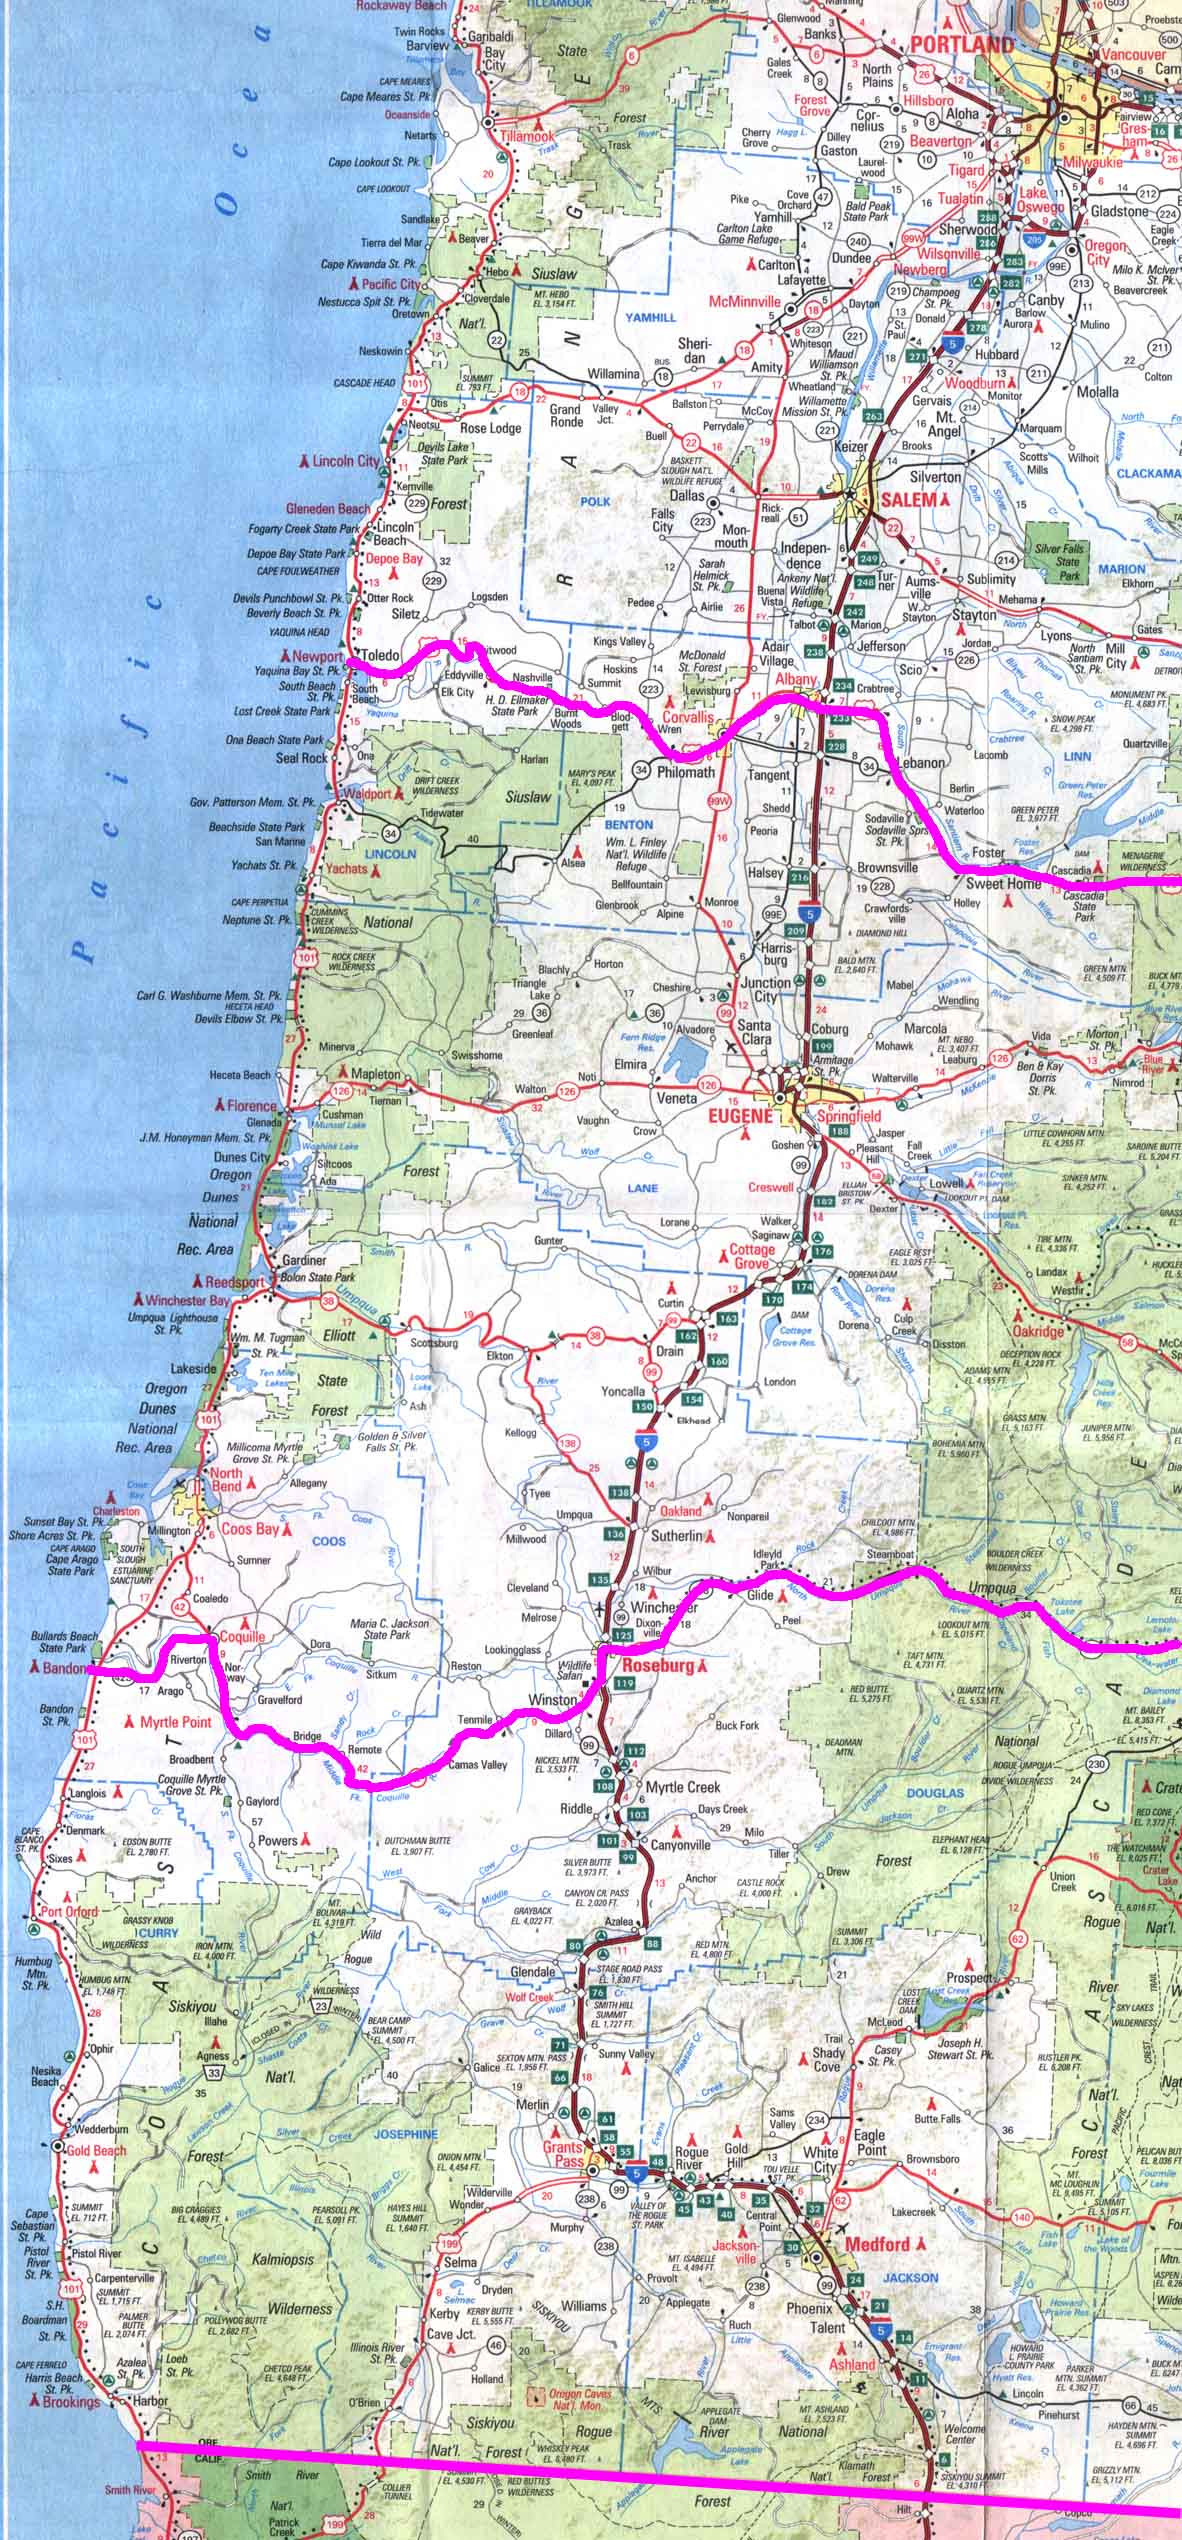 Road Map Of Southern Oregon And Northern California Printable Map - Road Map Of Southern Oregon And Northern California